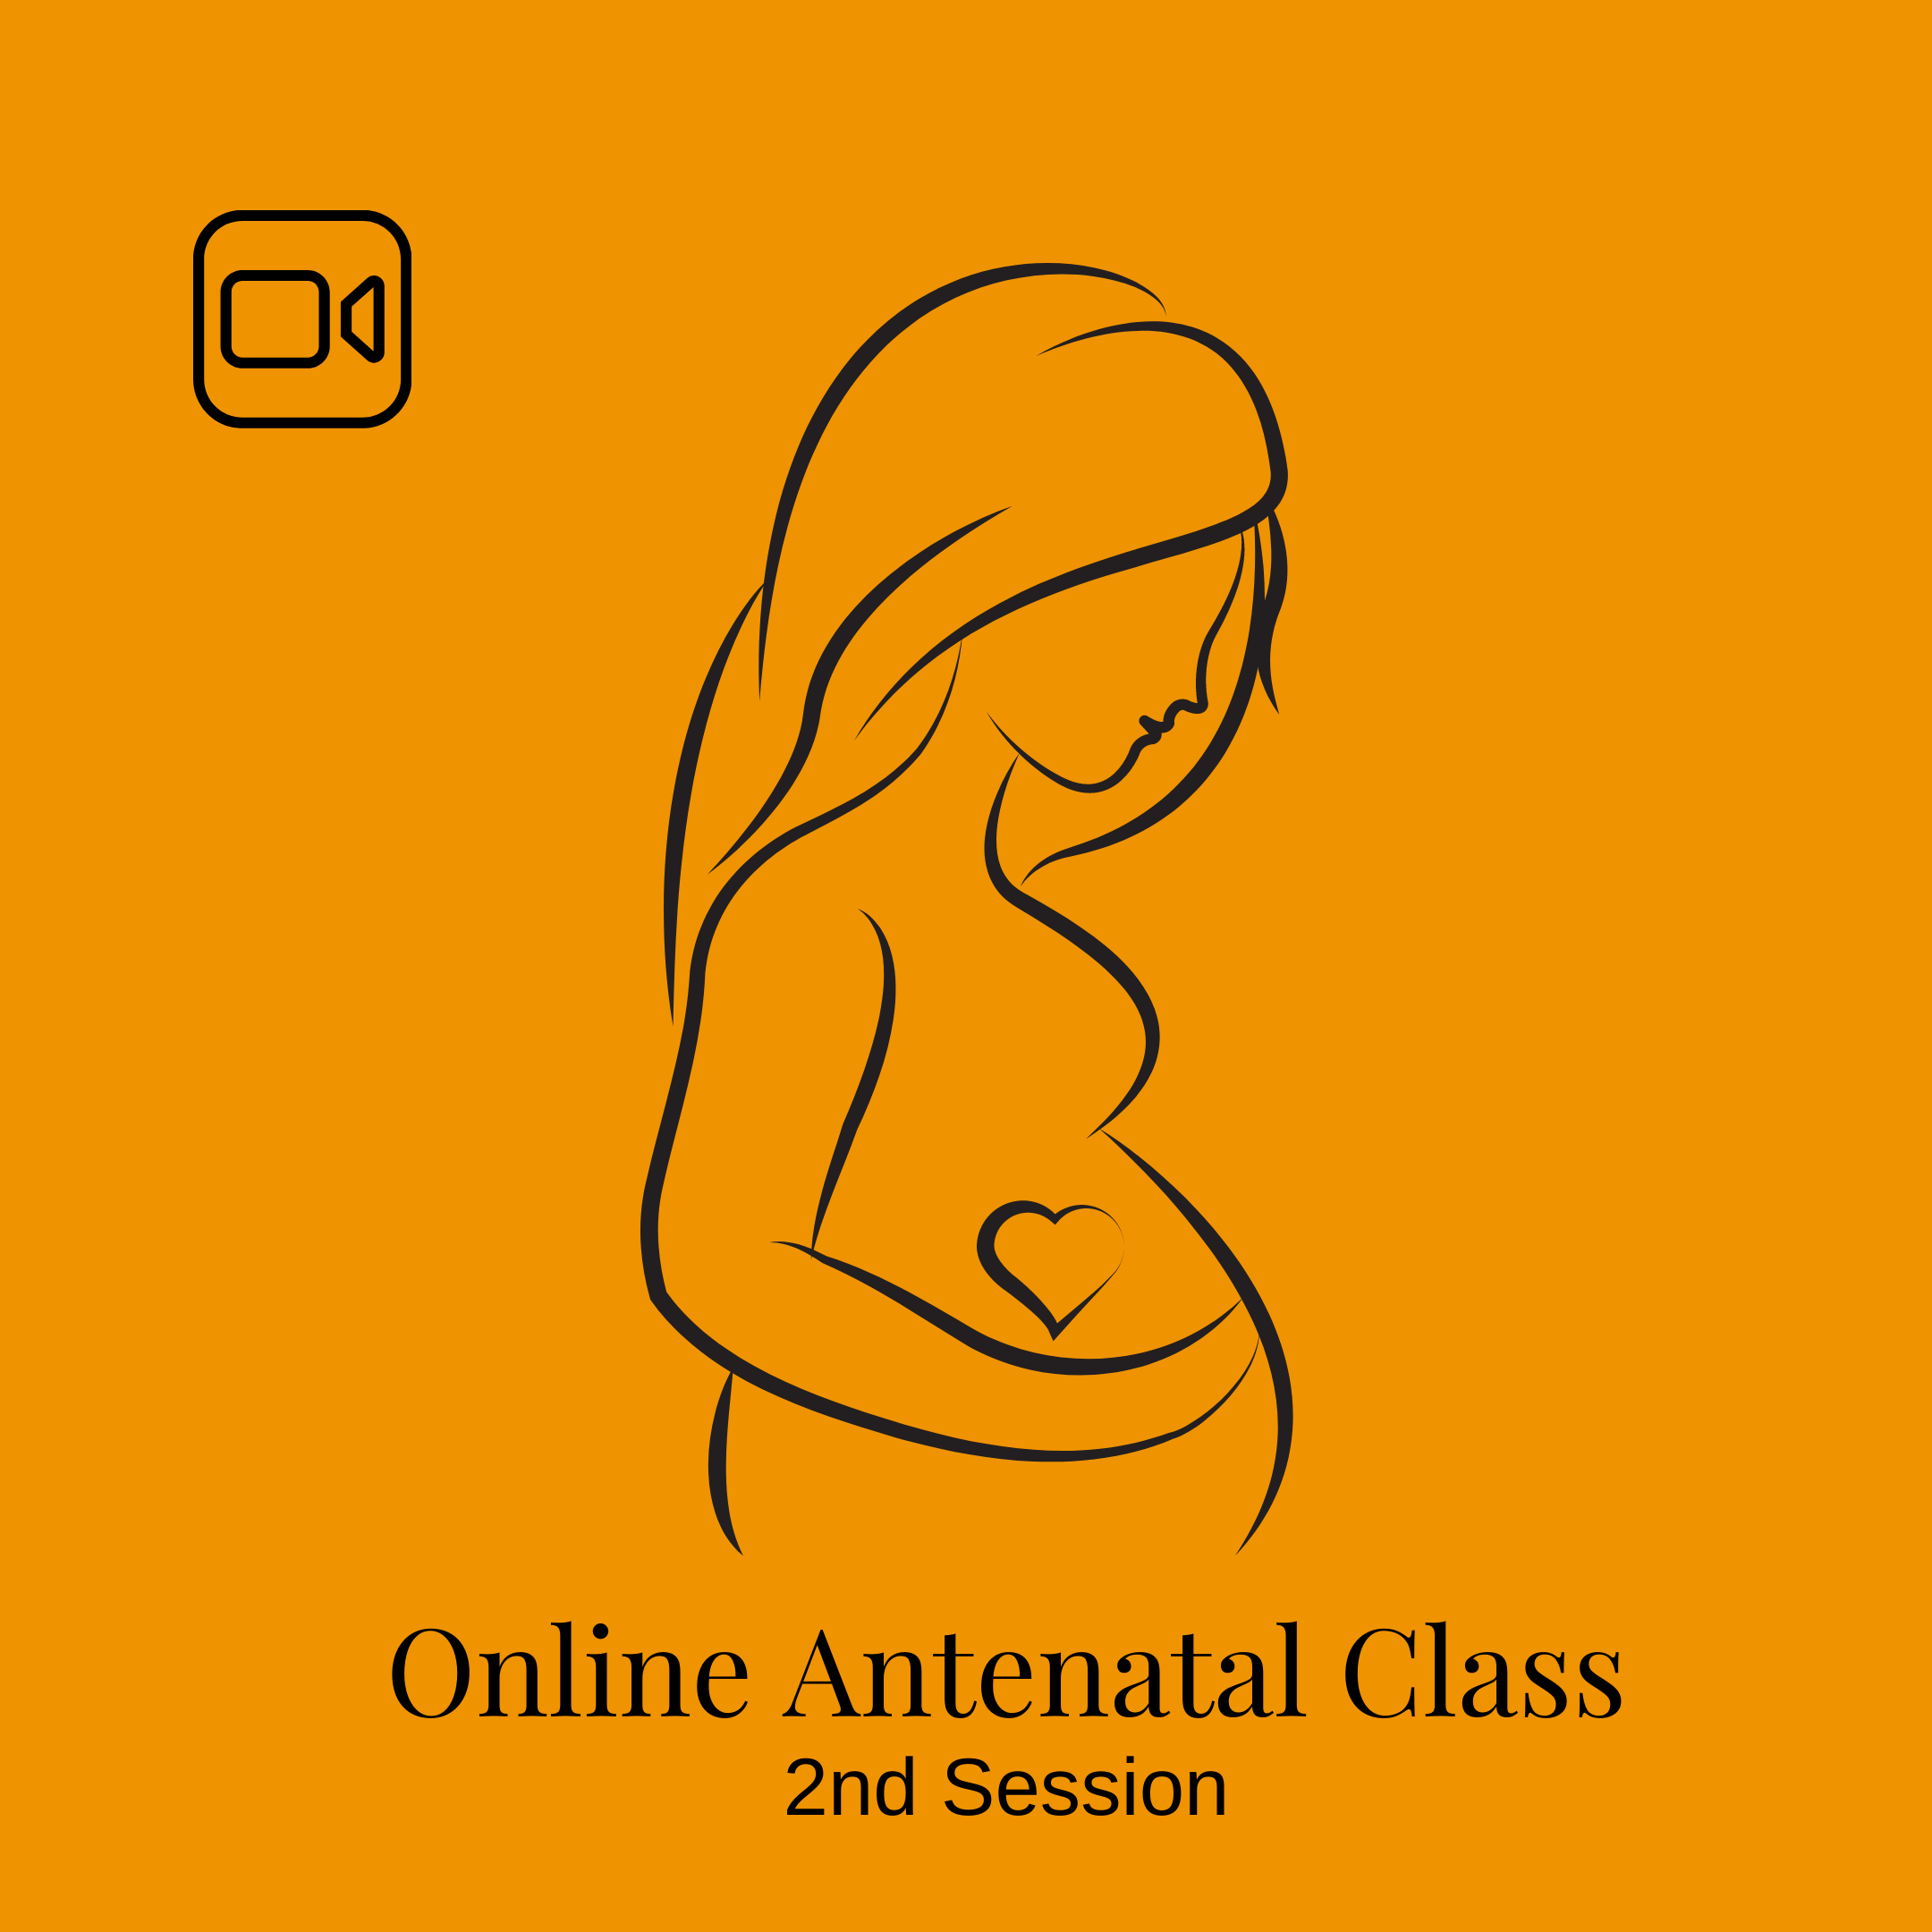 Online Antenatal Class: 2nd Session